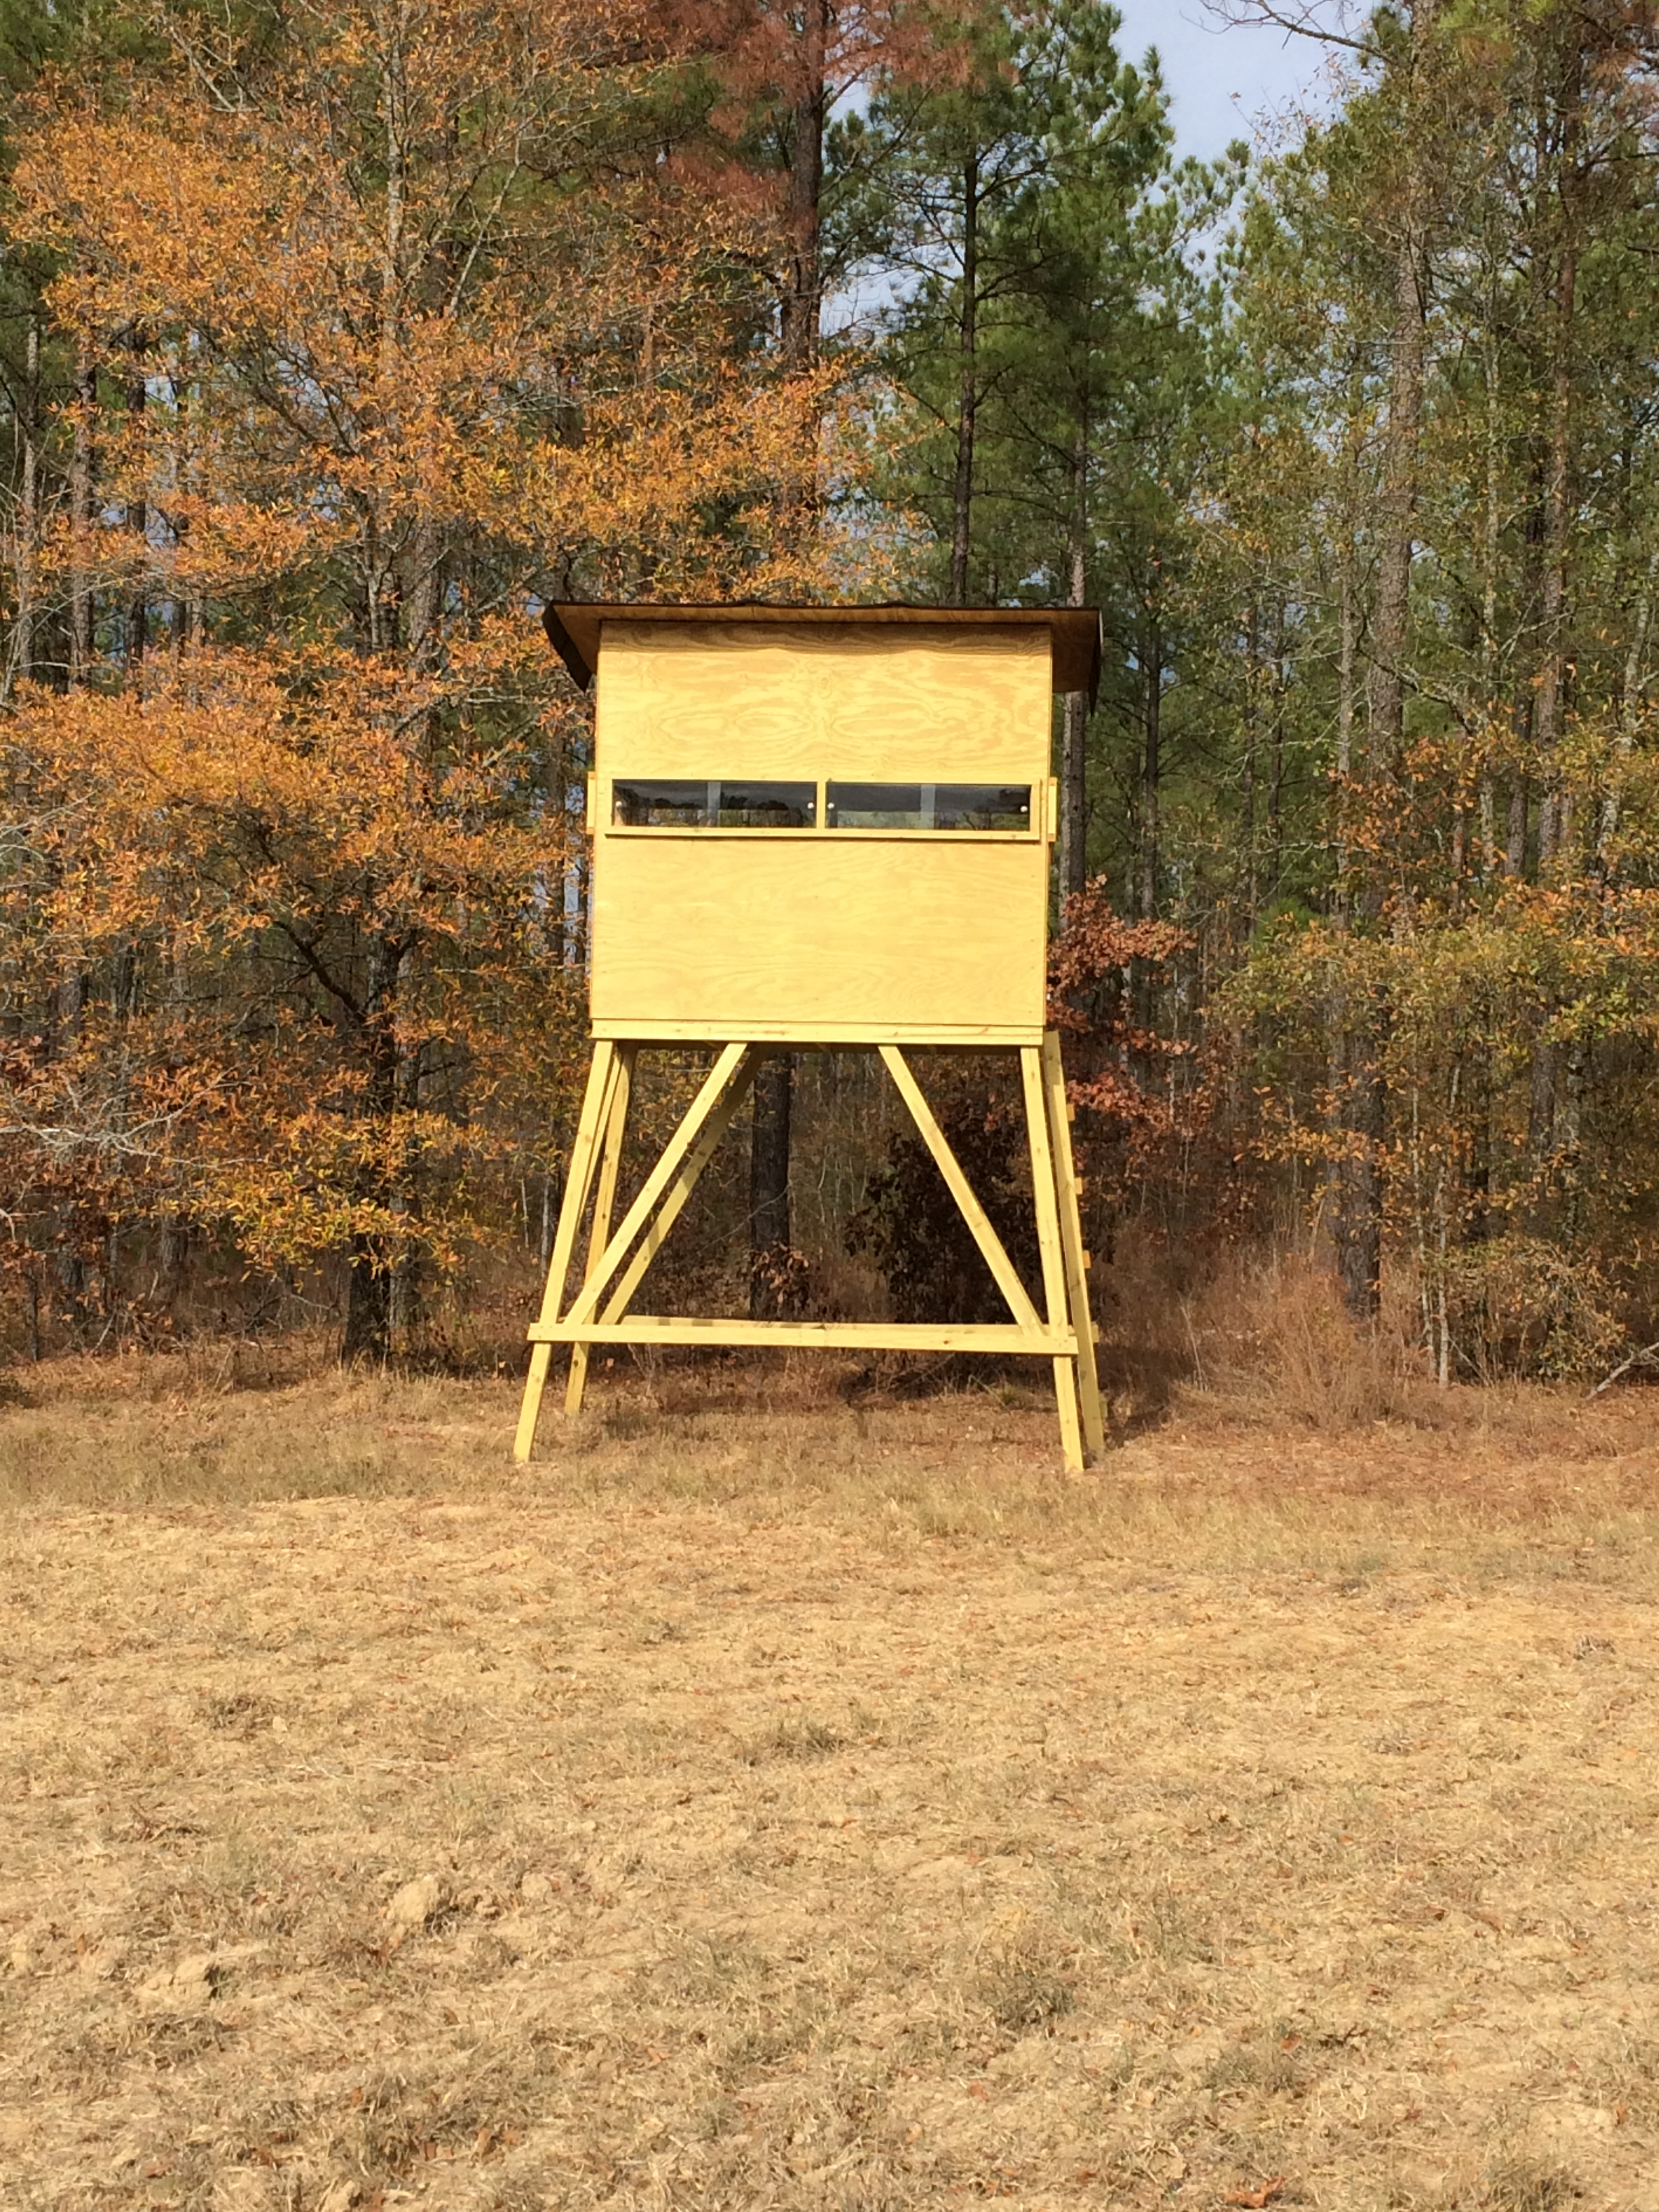 high chair deer stand dining covers ikea uk adams stands amore comfortable hunting experience we customize each from wood selection paint color windows height and many more options all are built to order offer